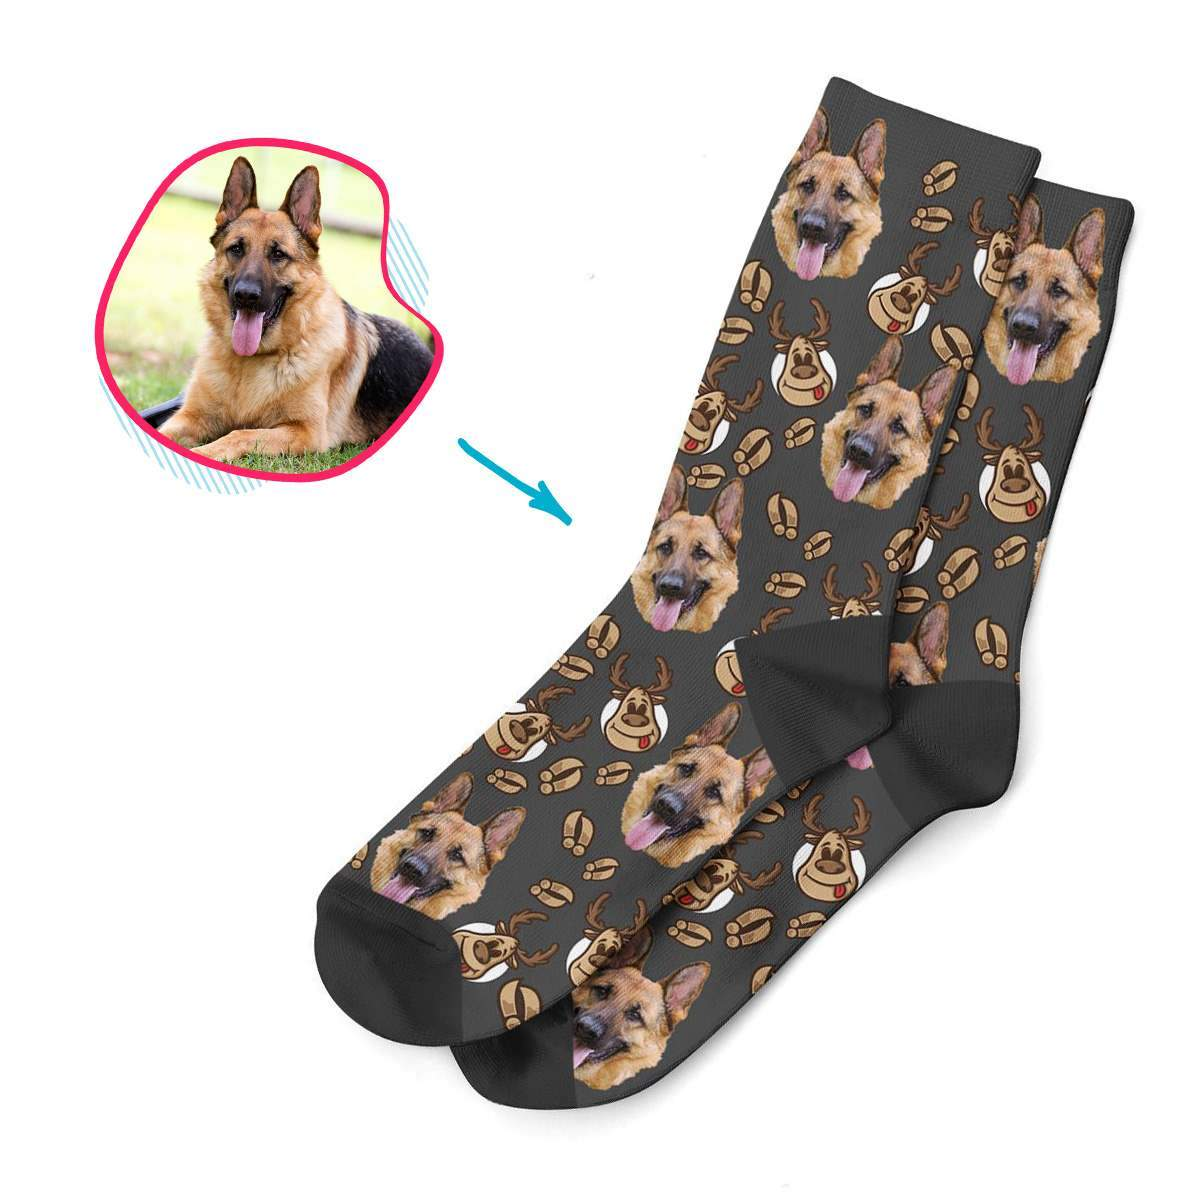 dark Deer Hunter socks personalized with photo of face printed on them